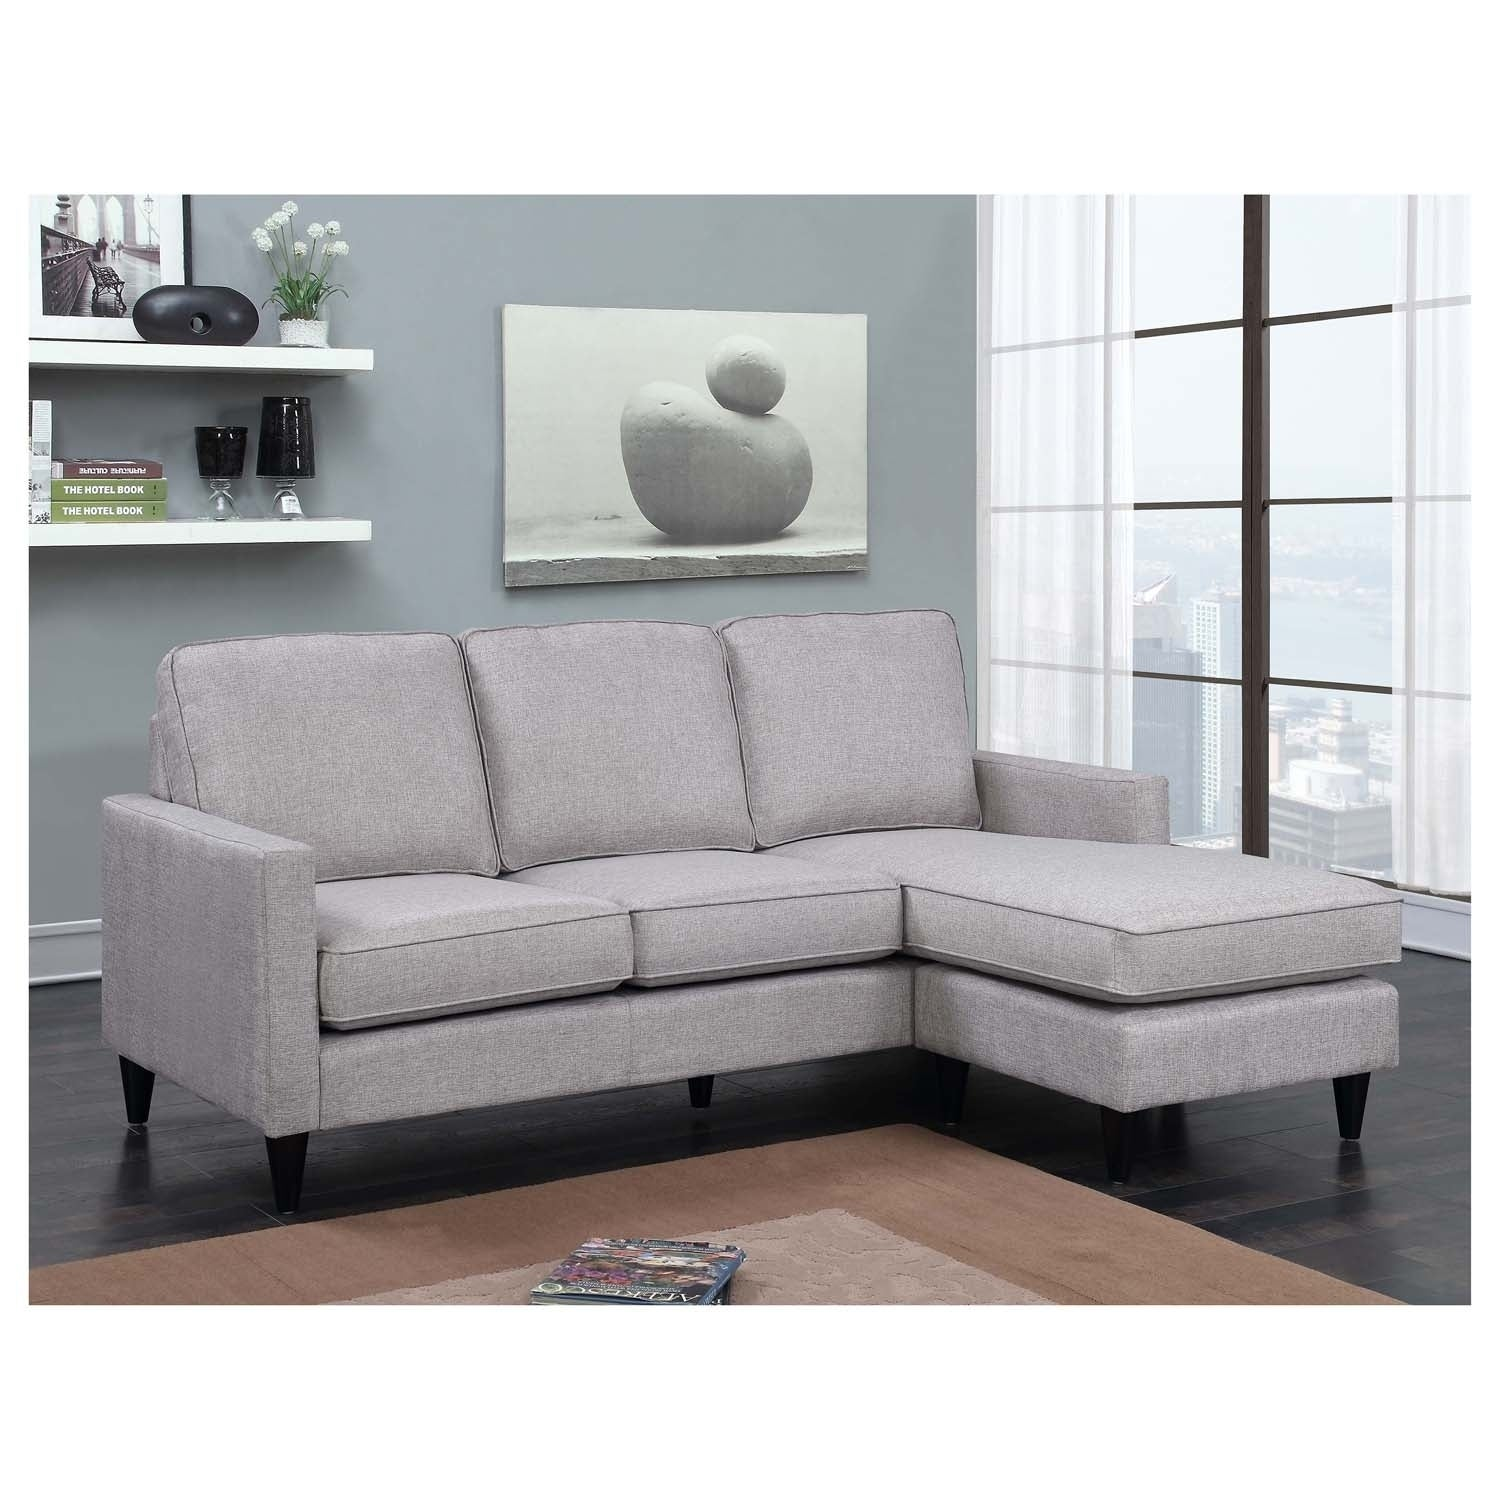 dark chaise with throughout sushi gray leather charcoal your homes ege elites amazing sectional flayer brilliant com using the in decor sofa within home sofas grey